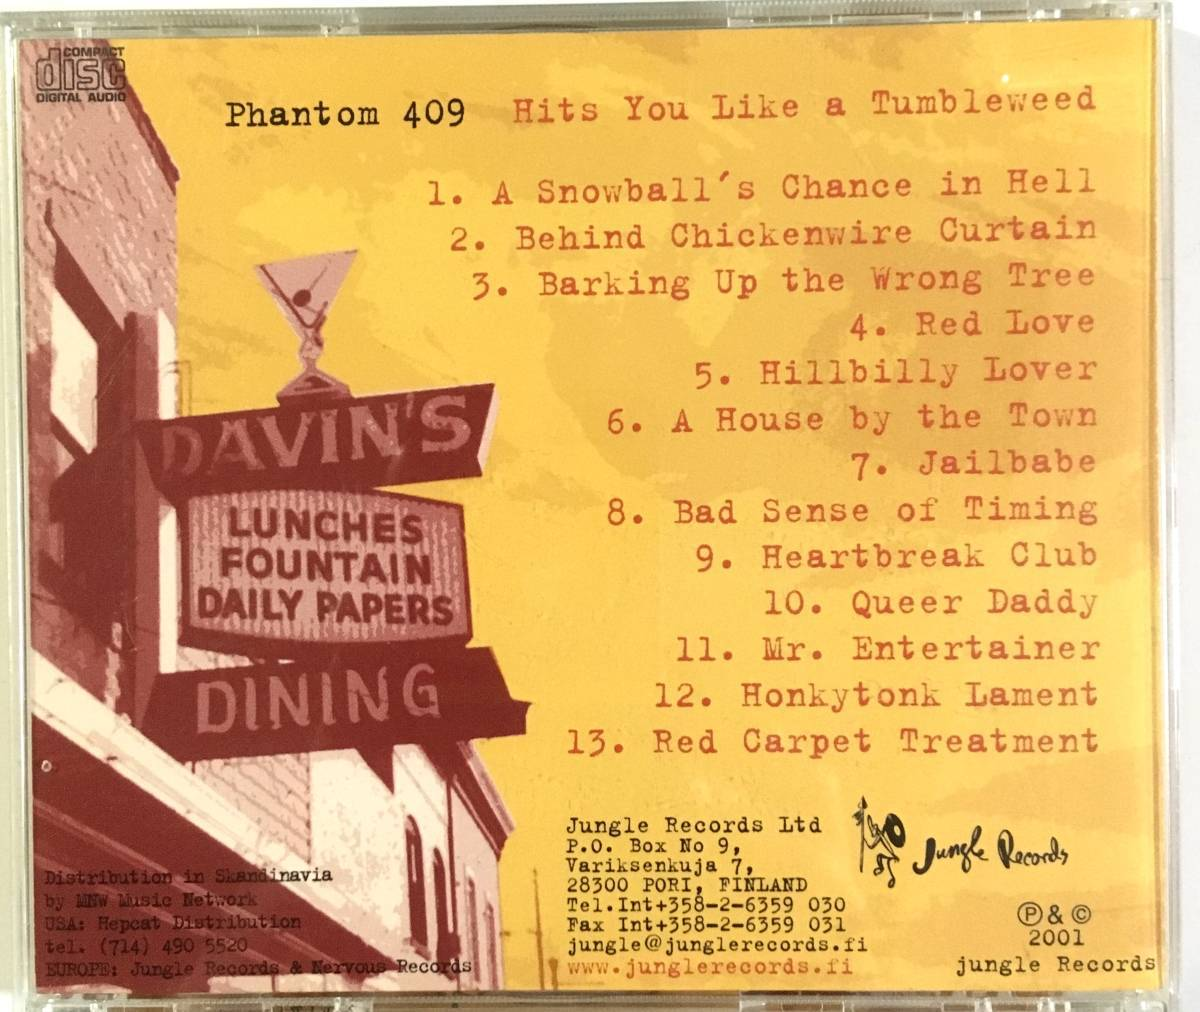 CD Phantom 409/Hits You Like A Tumbleweed ネオロカビリー サイコビリー runaway boys boppin'b roughnecks ace cats cruisers keytones_画像2